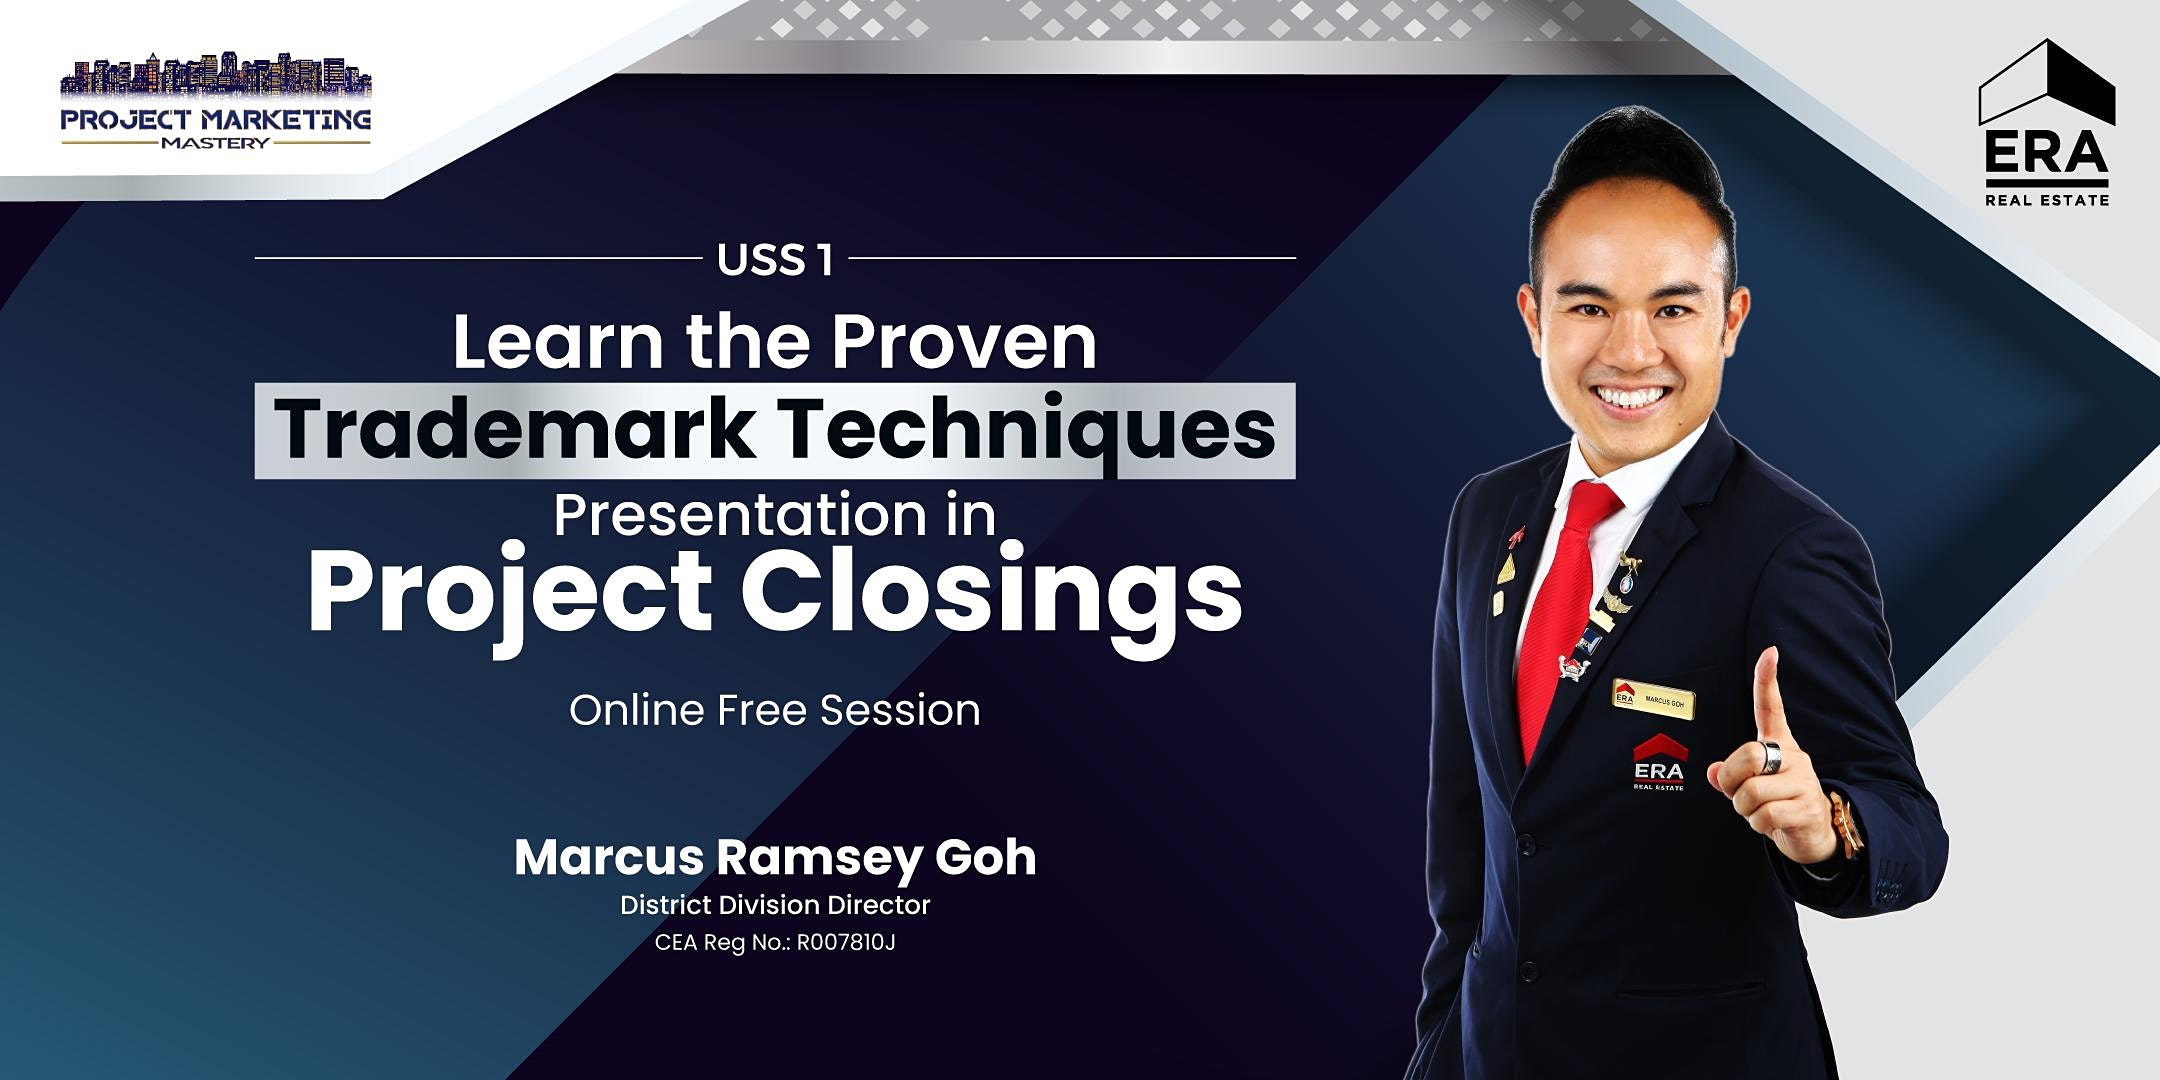 USS 1 : Project Marketing Mastery